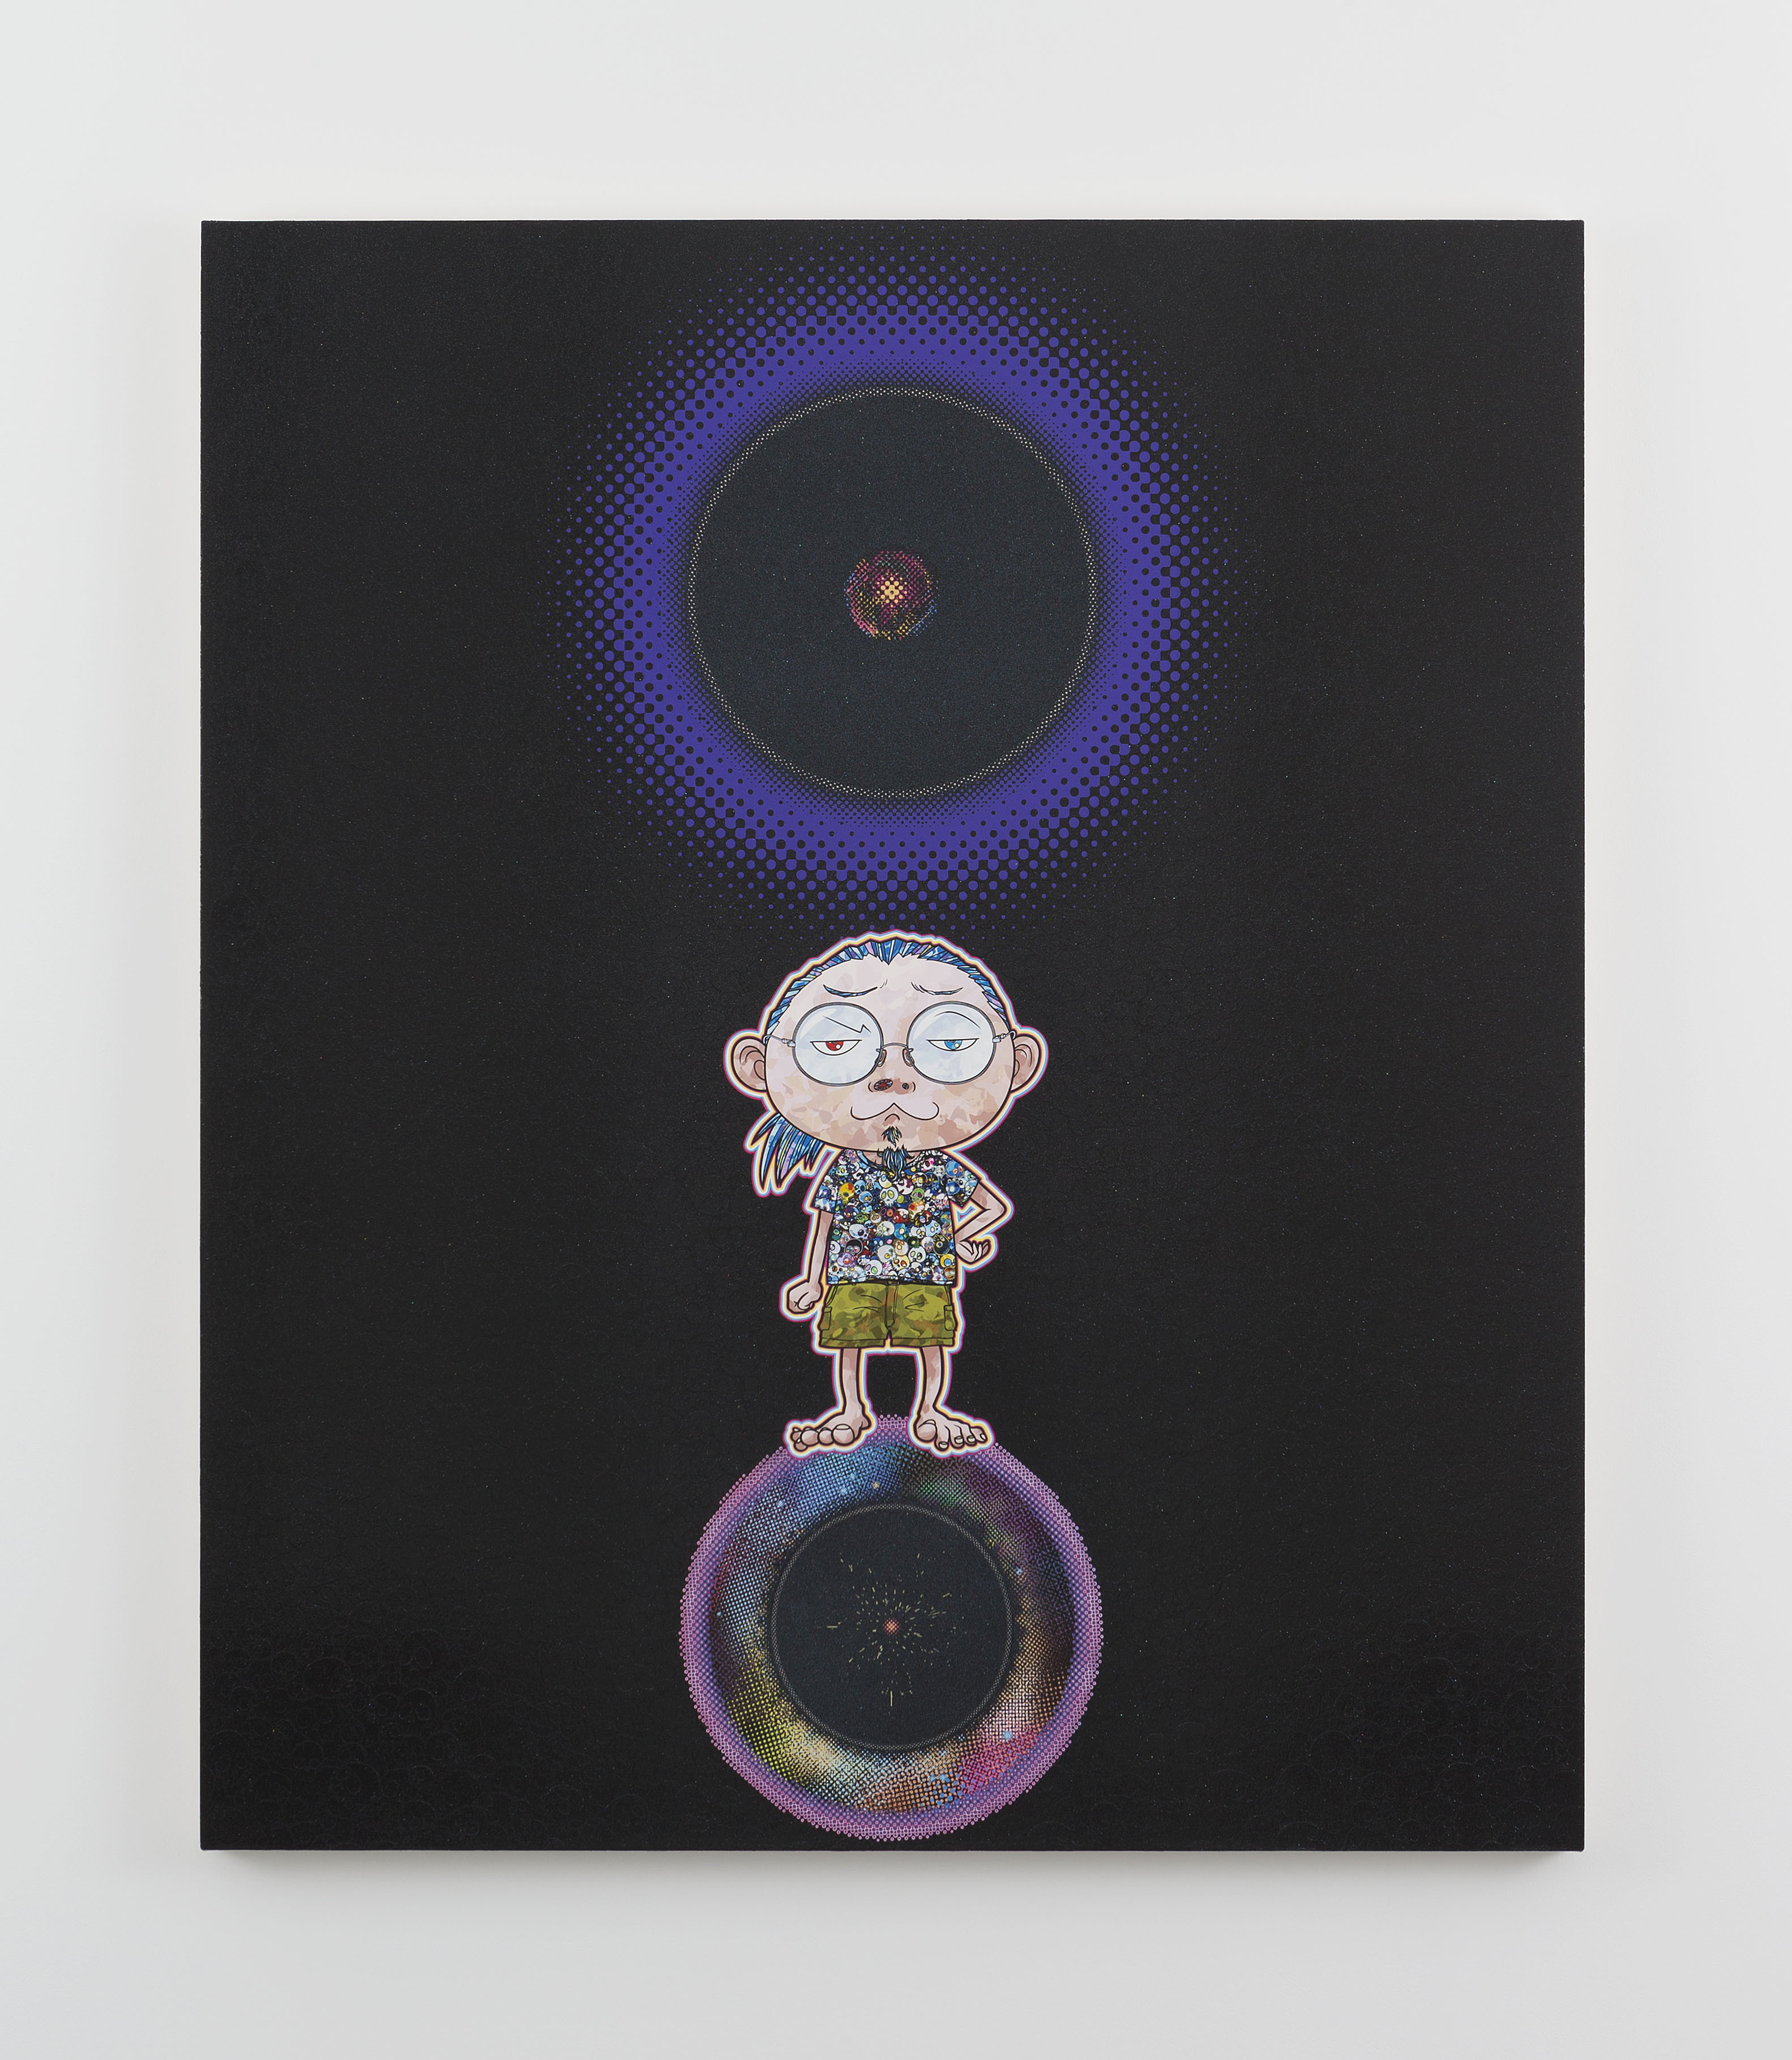 Ensō: At Our Side, Bending Space-time, 2015 © 2015 Takashi Murakami/Kaikai Kiki Co., Ltd. All Rights Reserved. Courtesy Galerie Perrotin